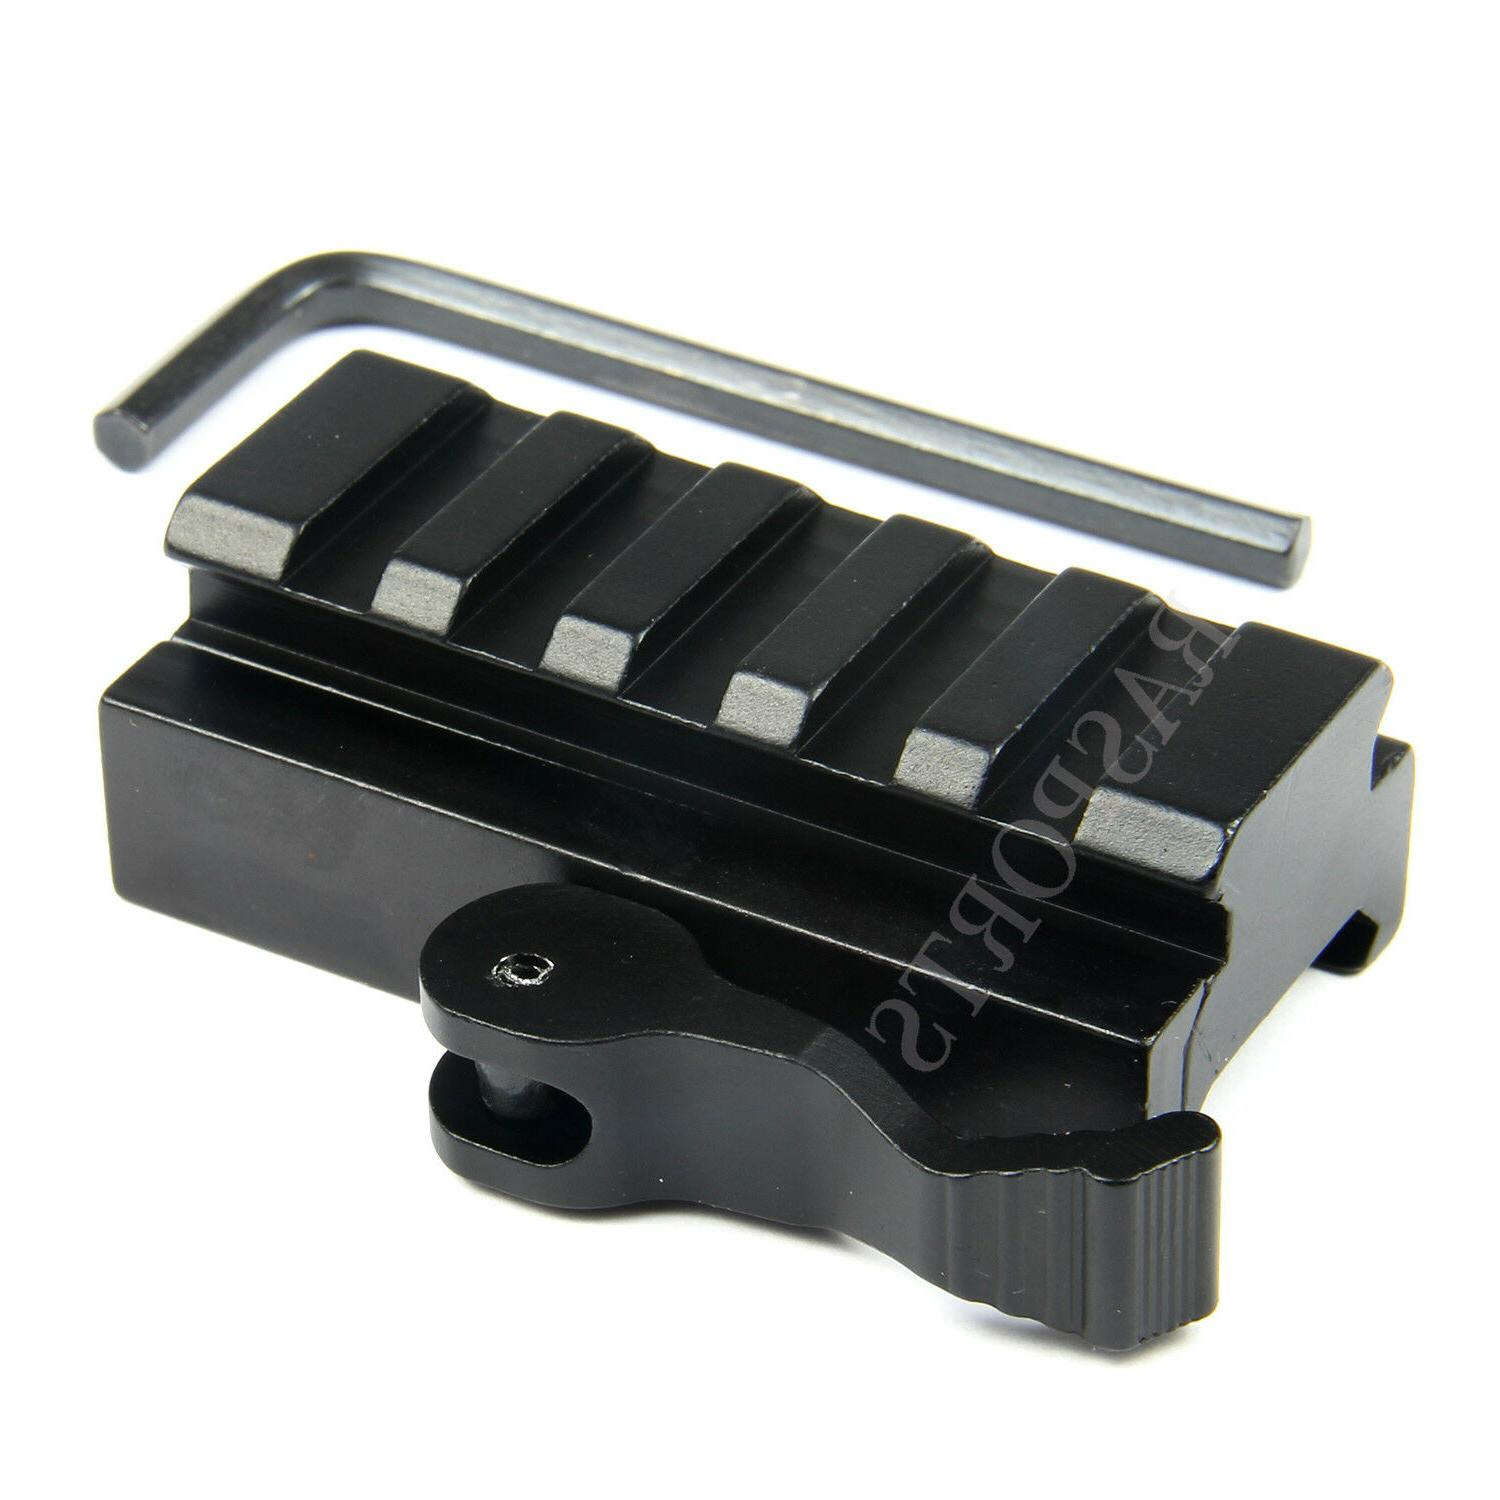 "5-Slot Quick Release Detach QR QD 1/2"" Riser Mount for Picat"